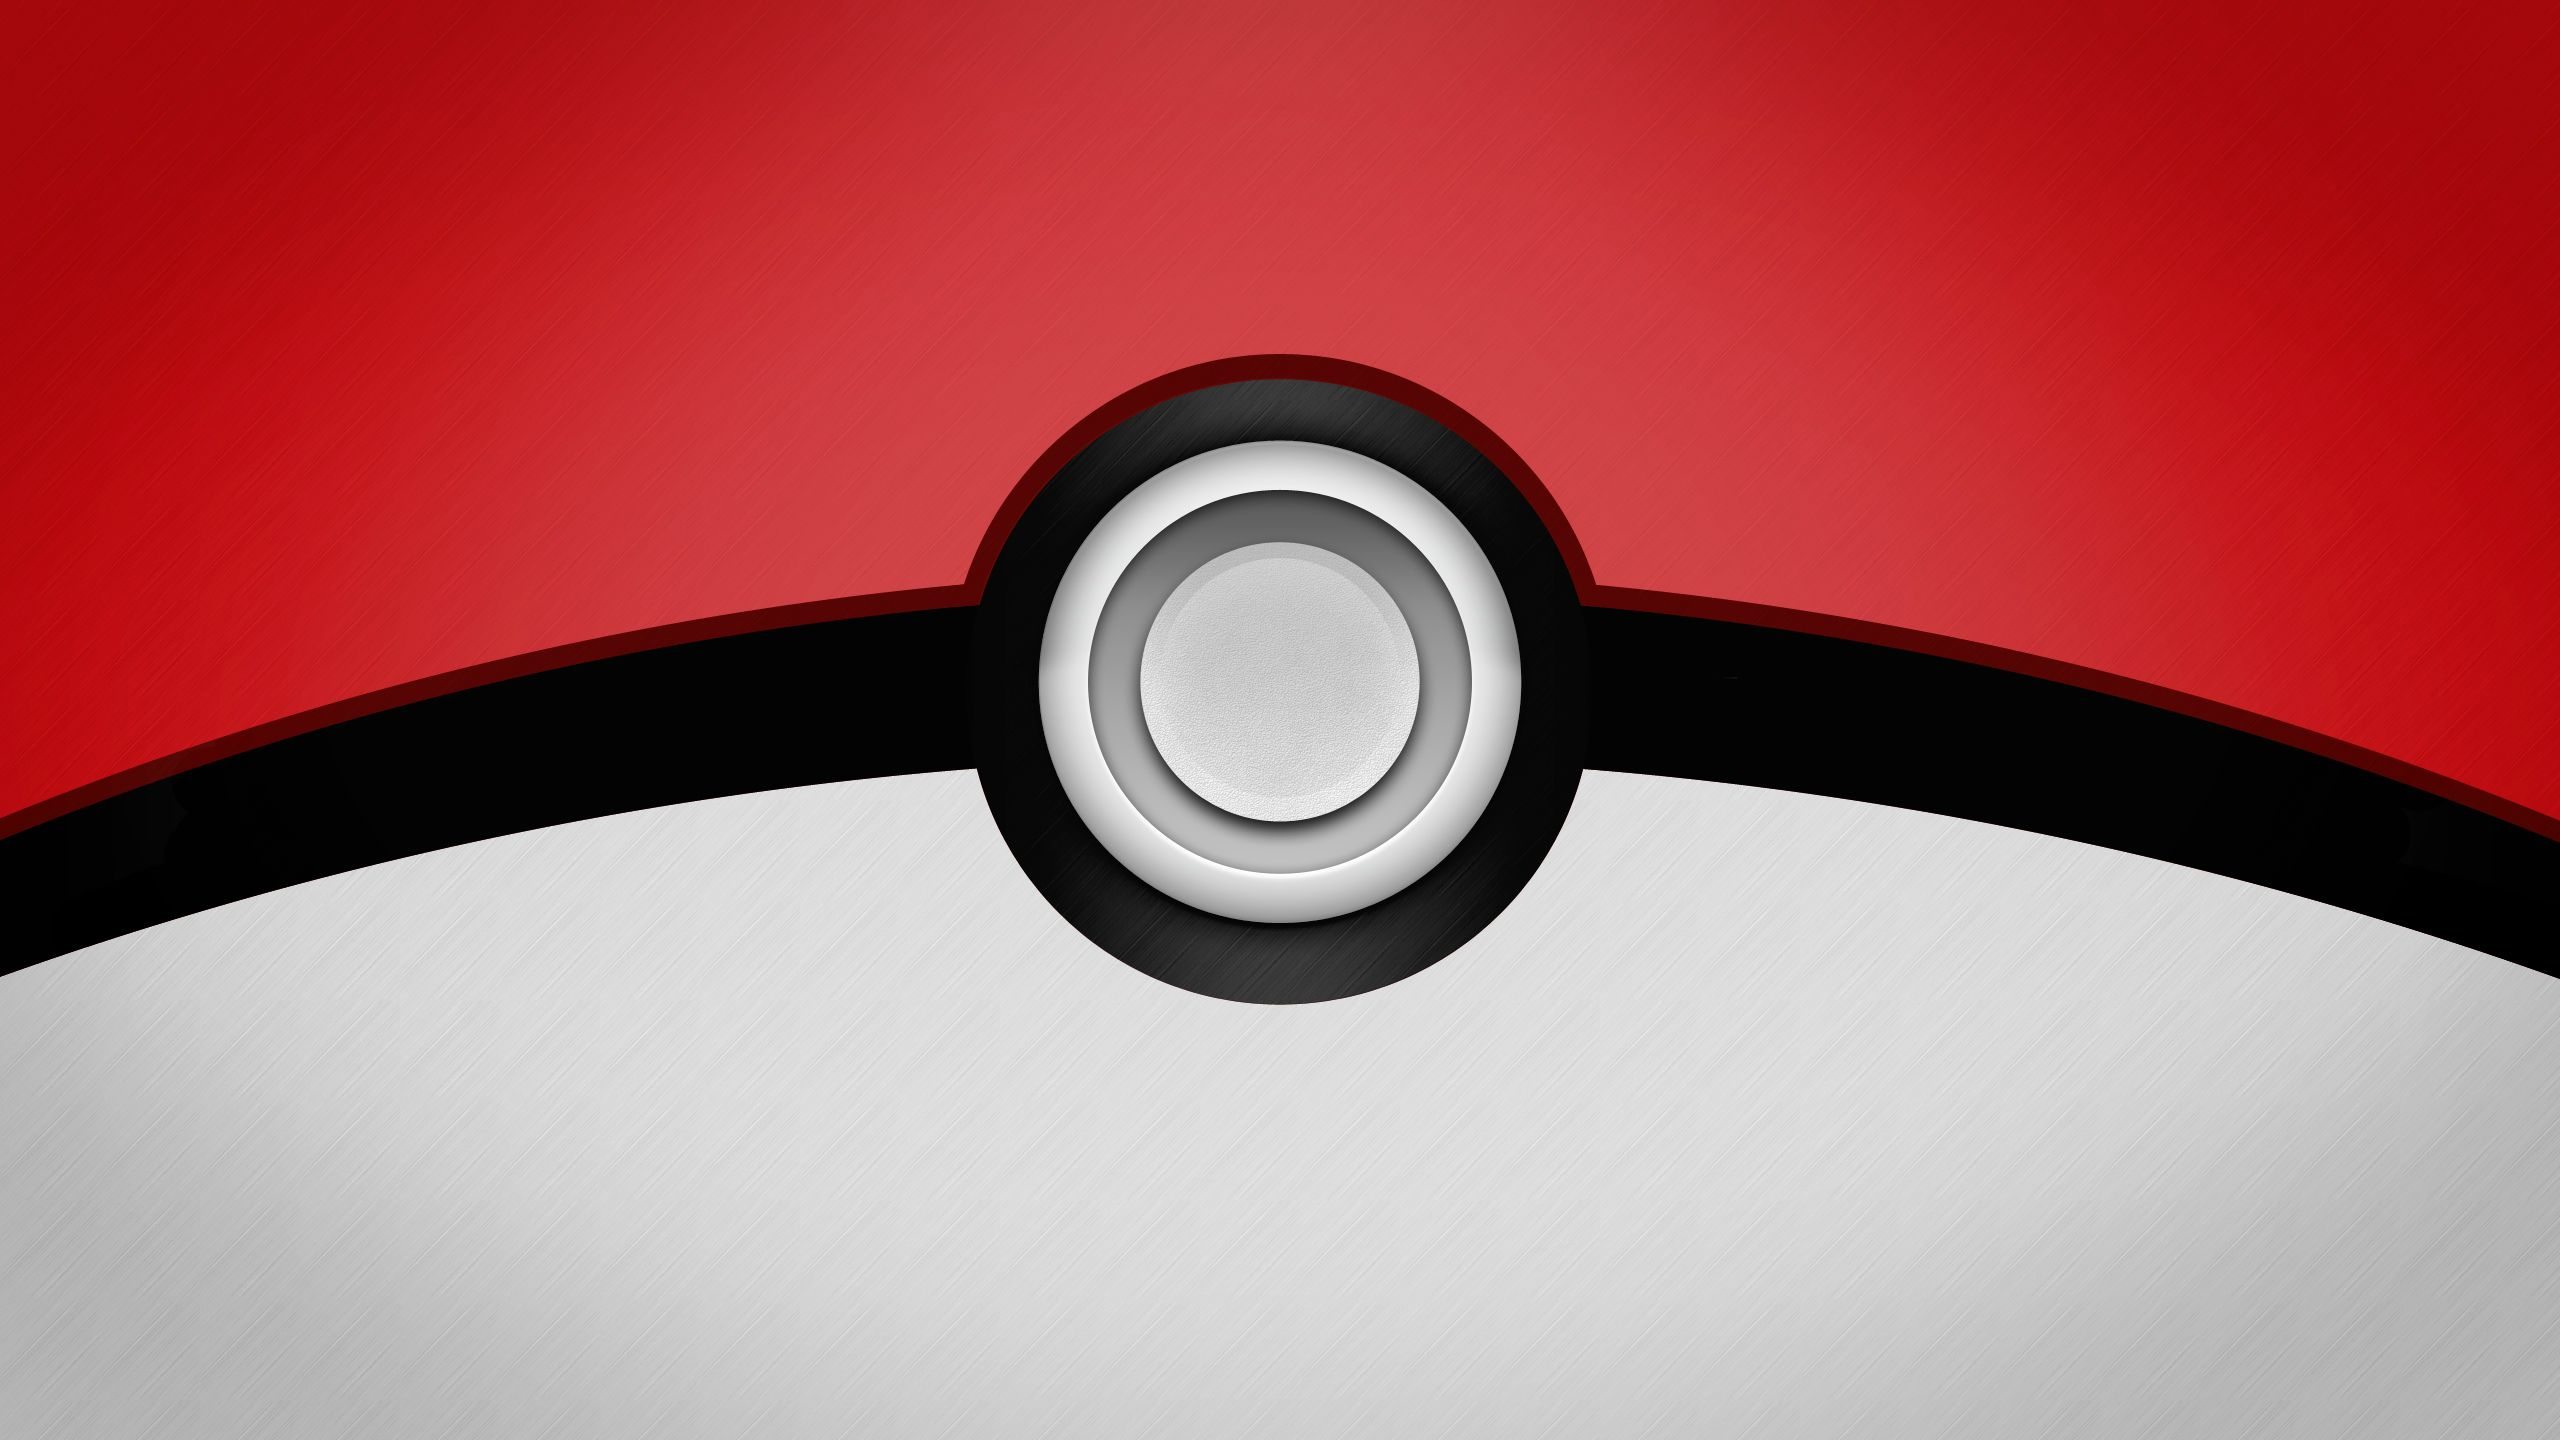 HD Pokeball Wallpapers - WallpaperSafari